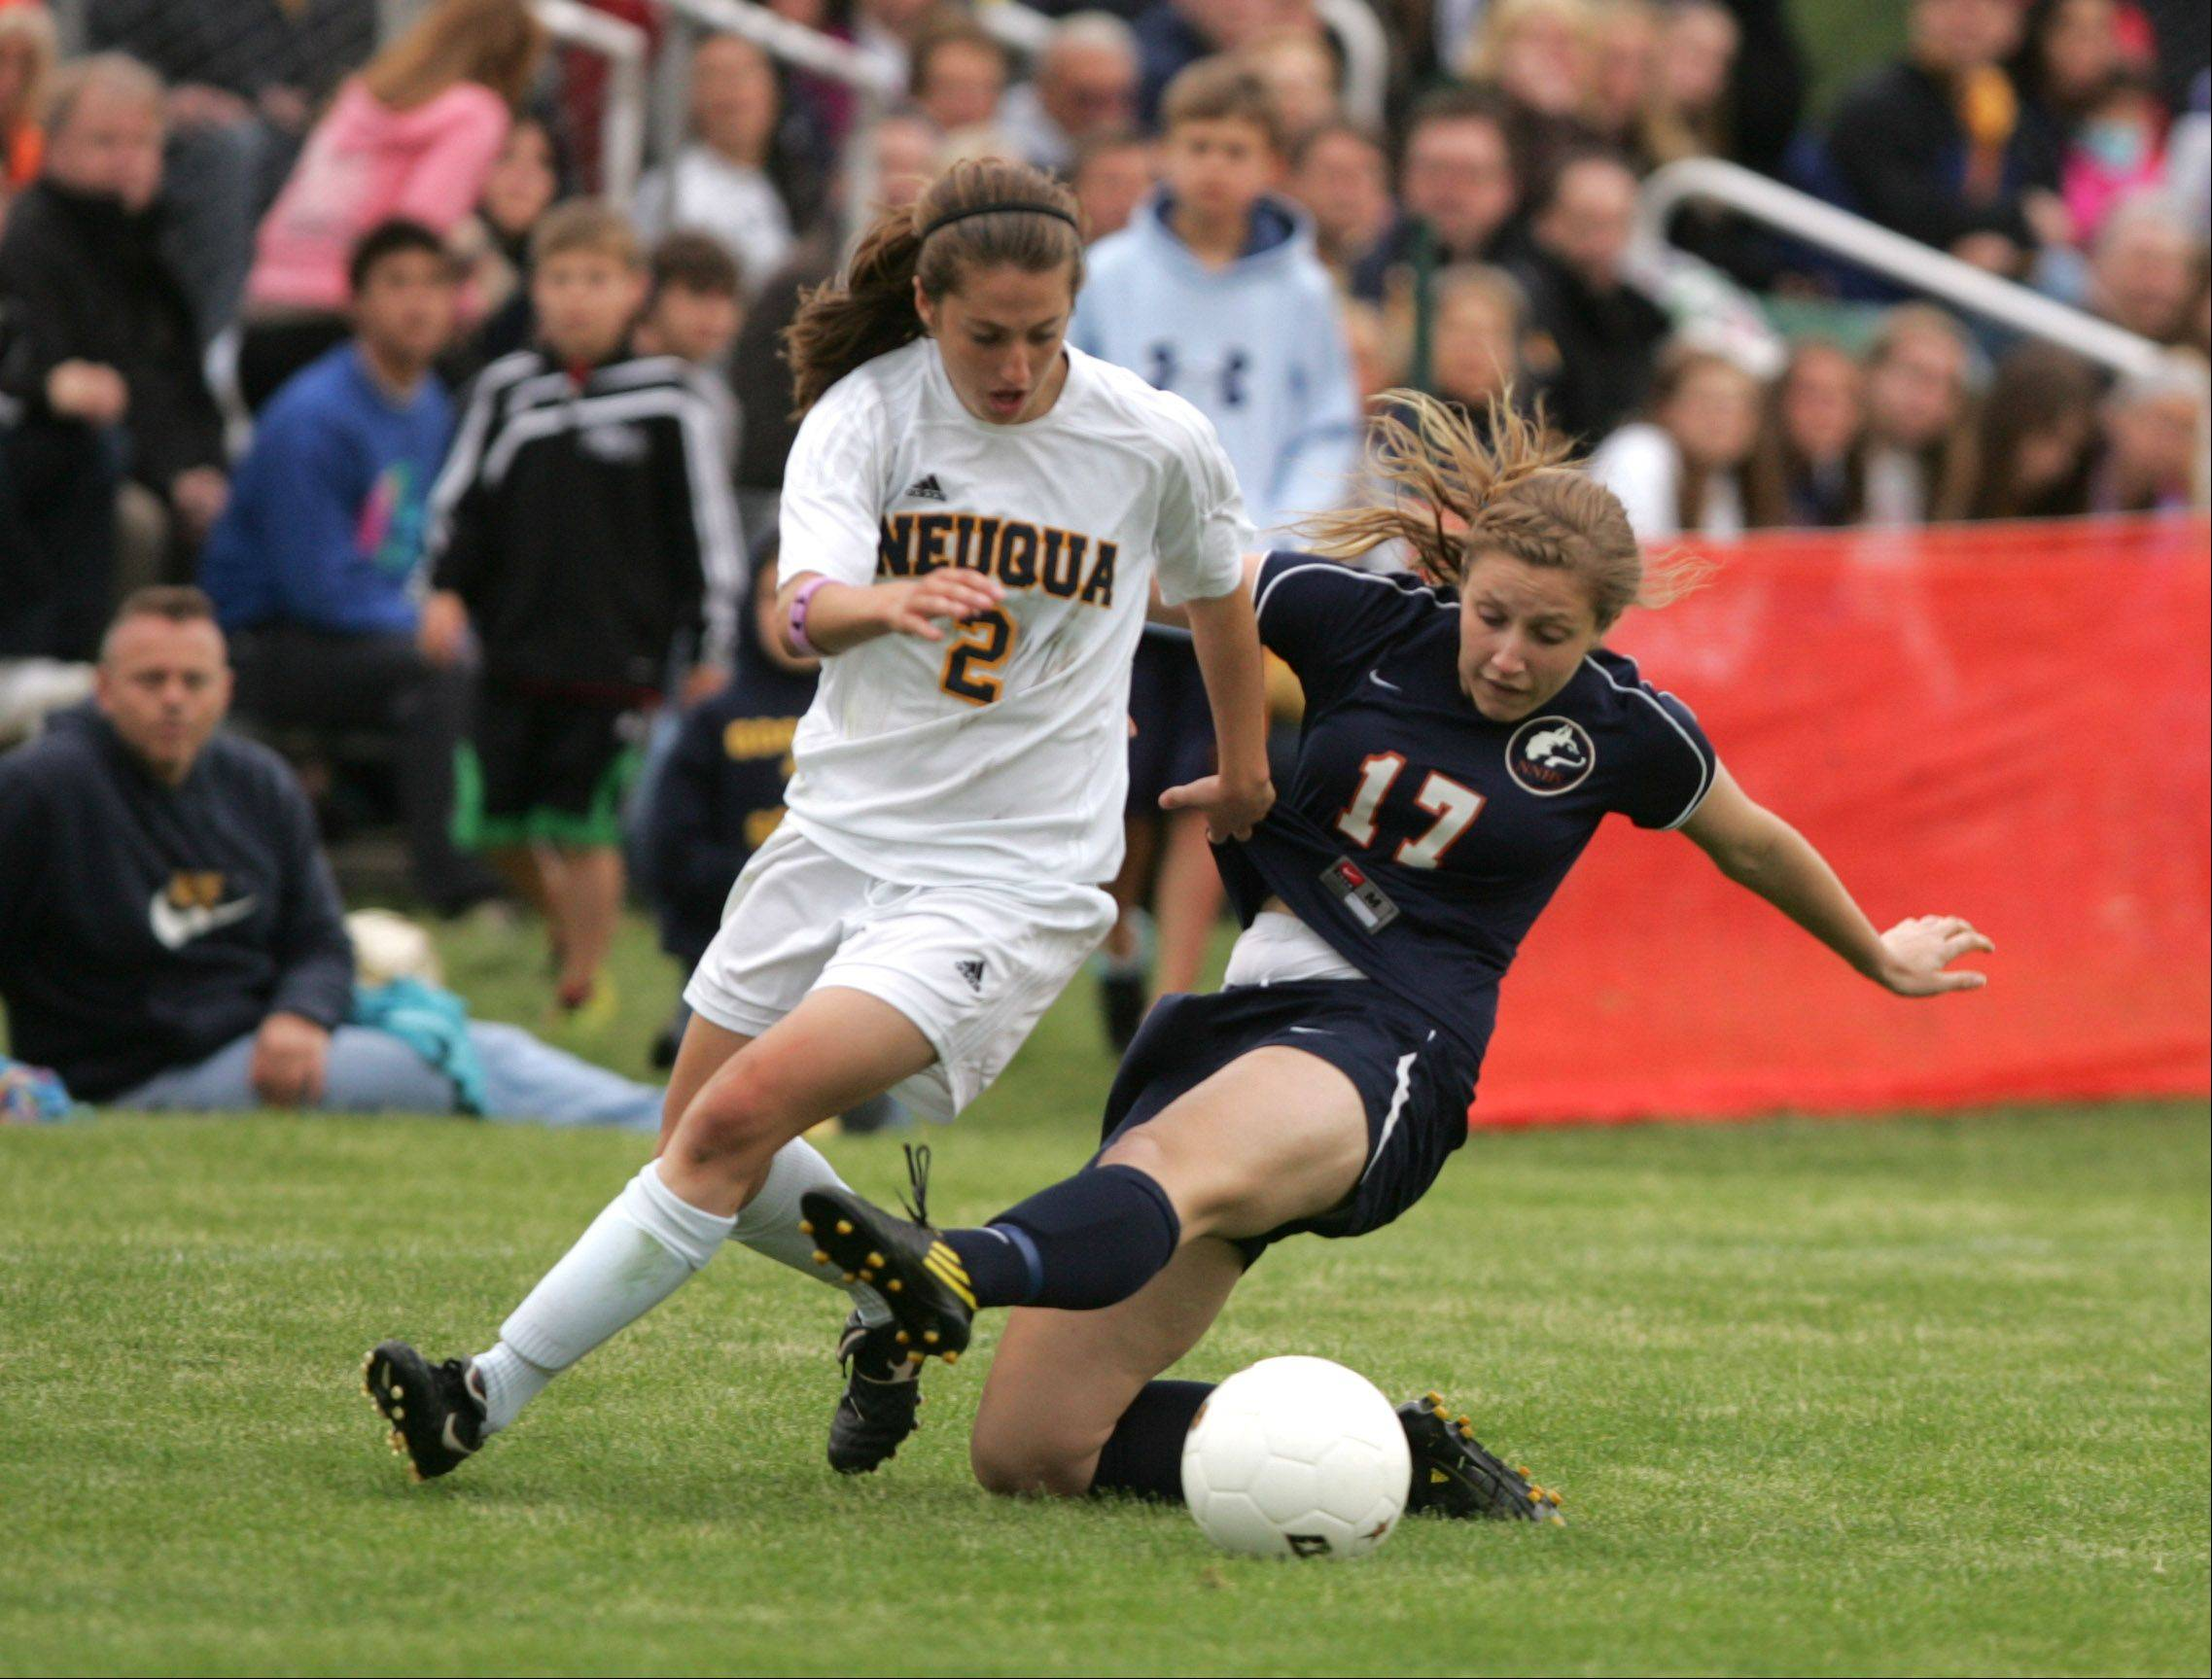 Neuqua Valley's Zoey Goralski (2) will play soccer at UCLA next year.